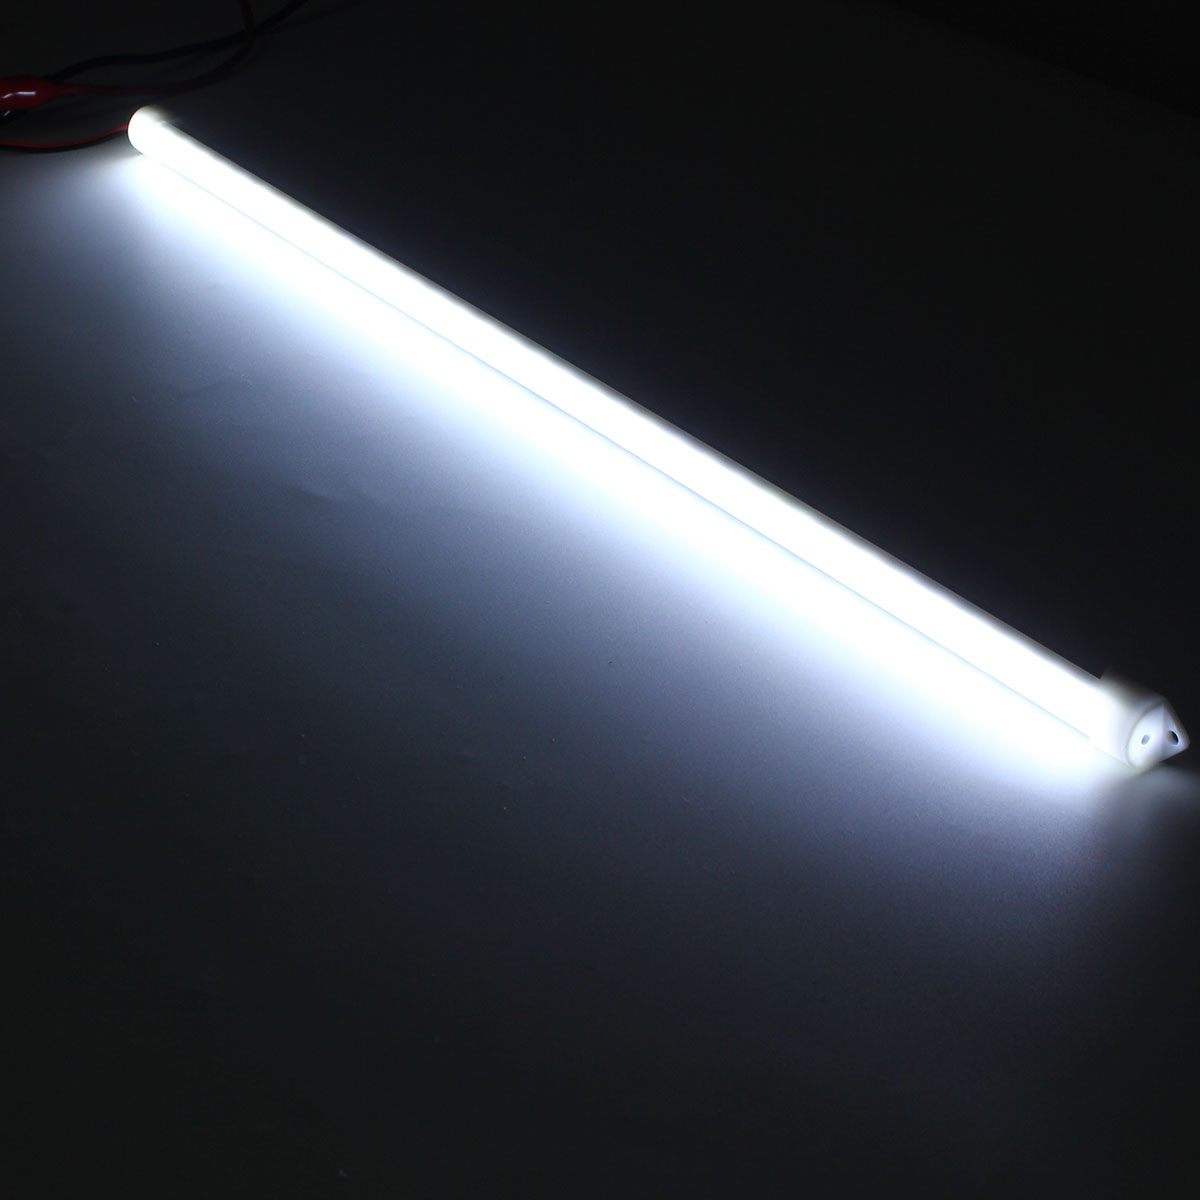 4 X 50CM Cool White 8520 SMD LED Rigid Strip Aluminum Case Cabinet Tube Light Lamp DC12V